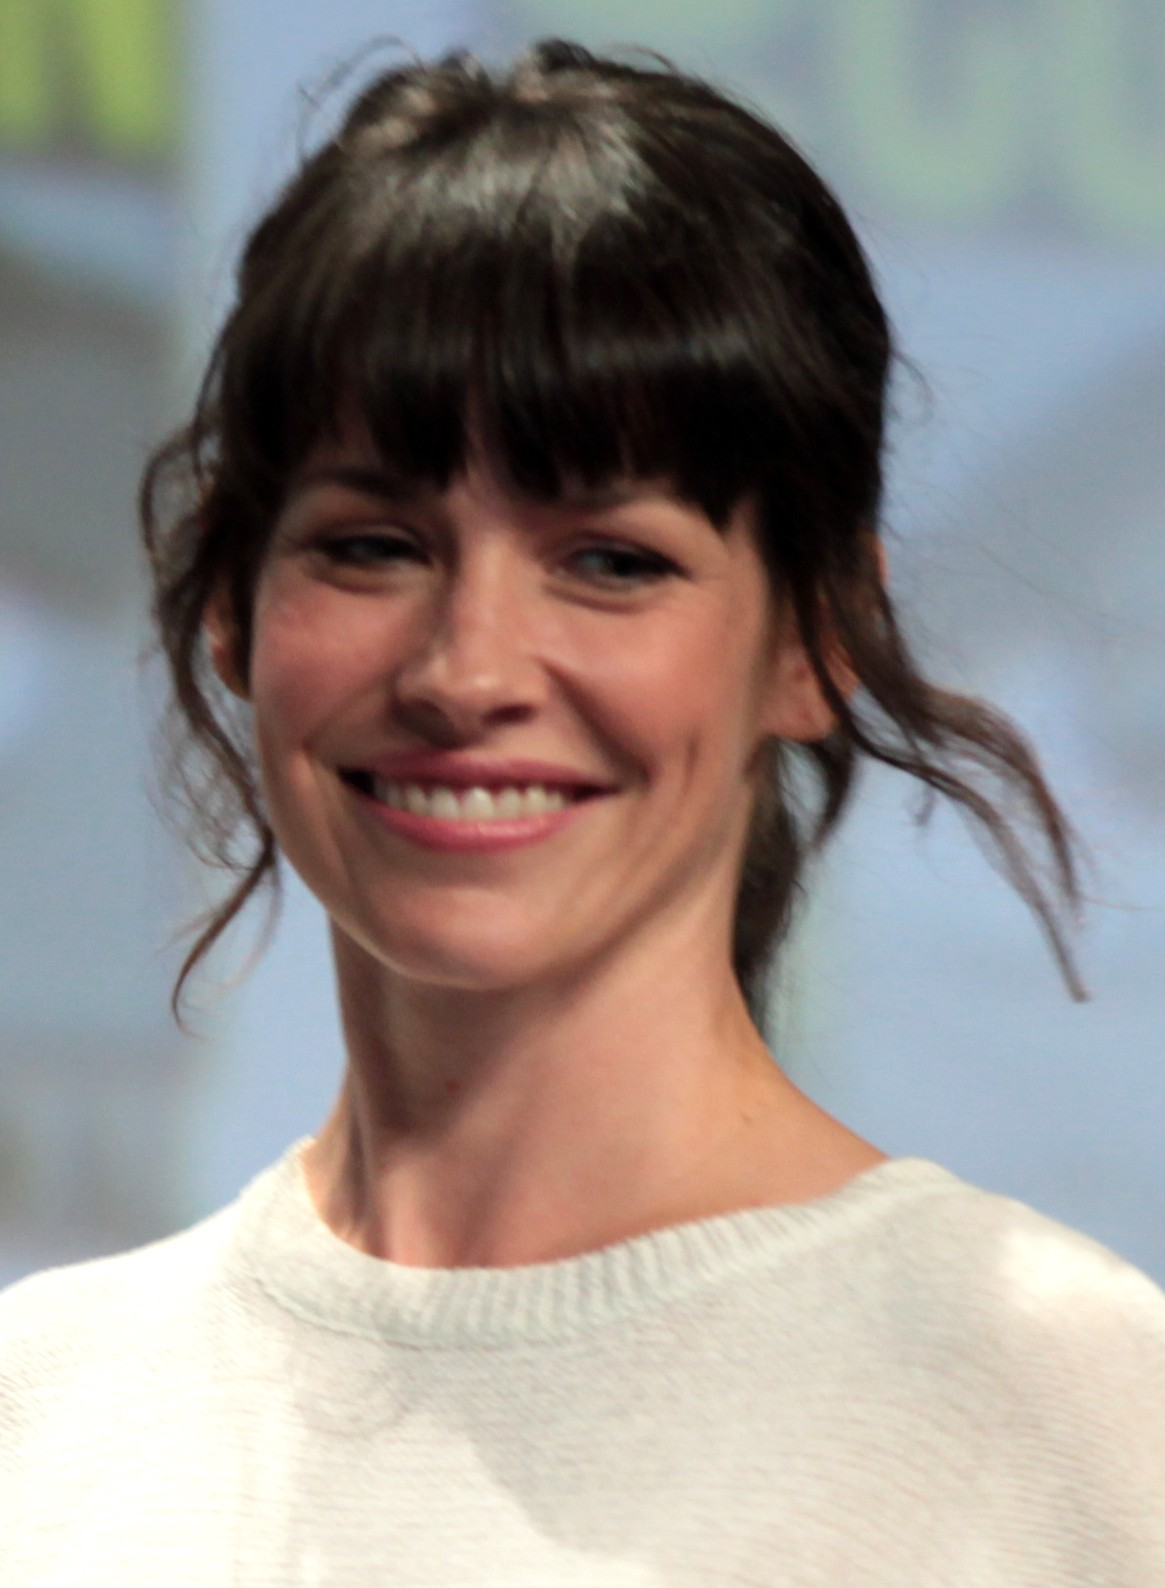 evangeline men Evangeline lilly portrayed hope van dyne in ant-man and will reprise the role in the upcoming ant-man and the wasp and avengers 4 significant roles kate austen in.